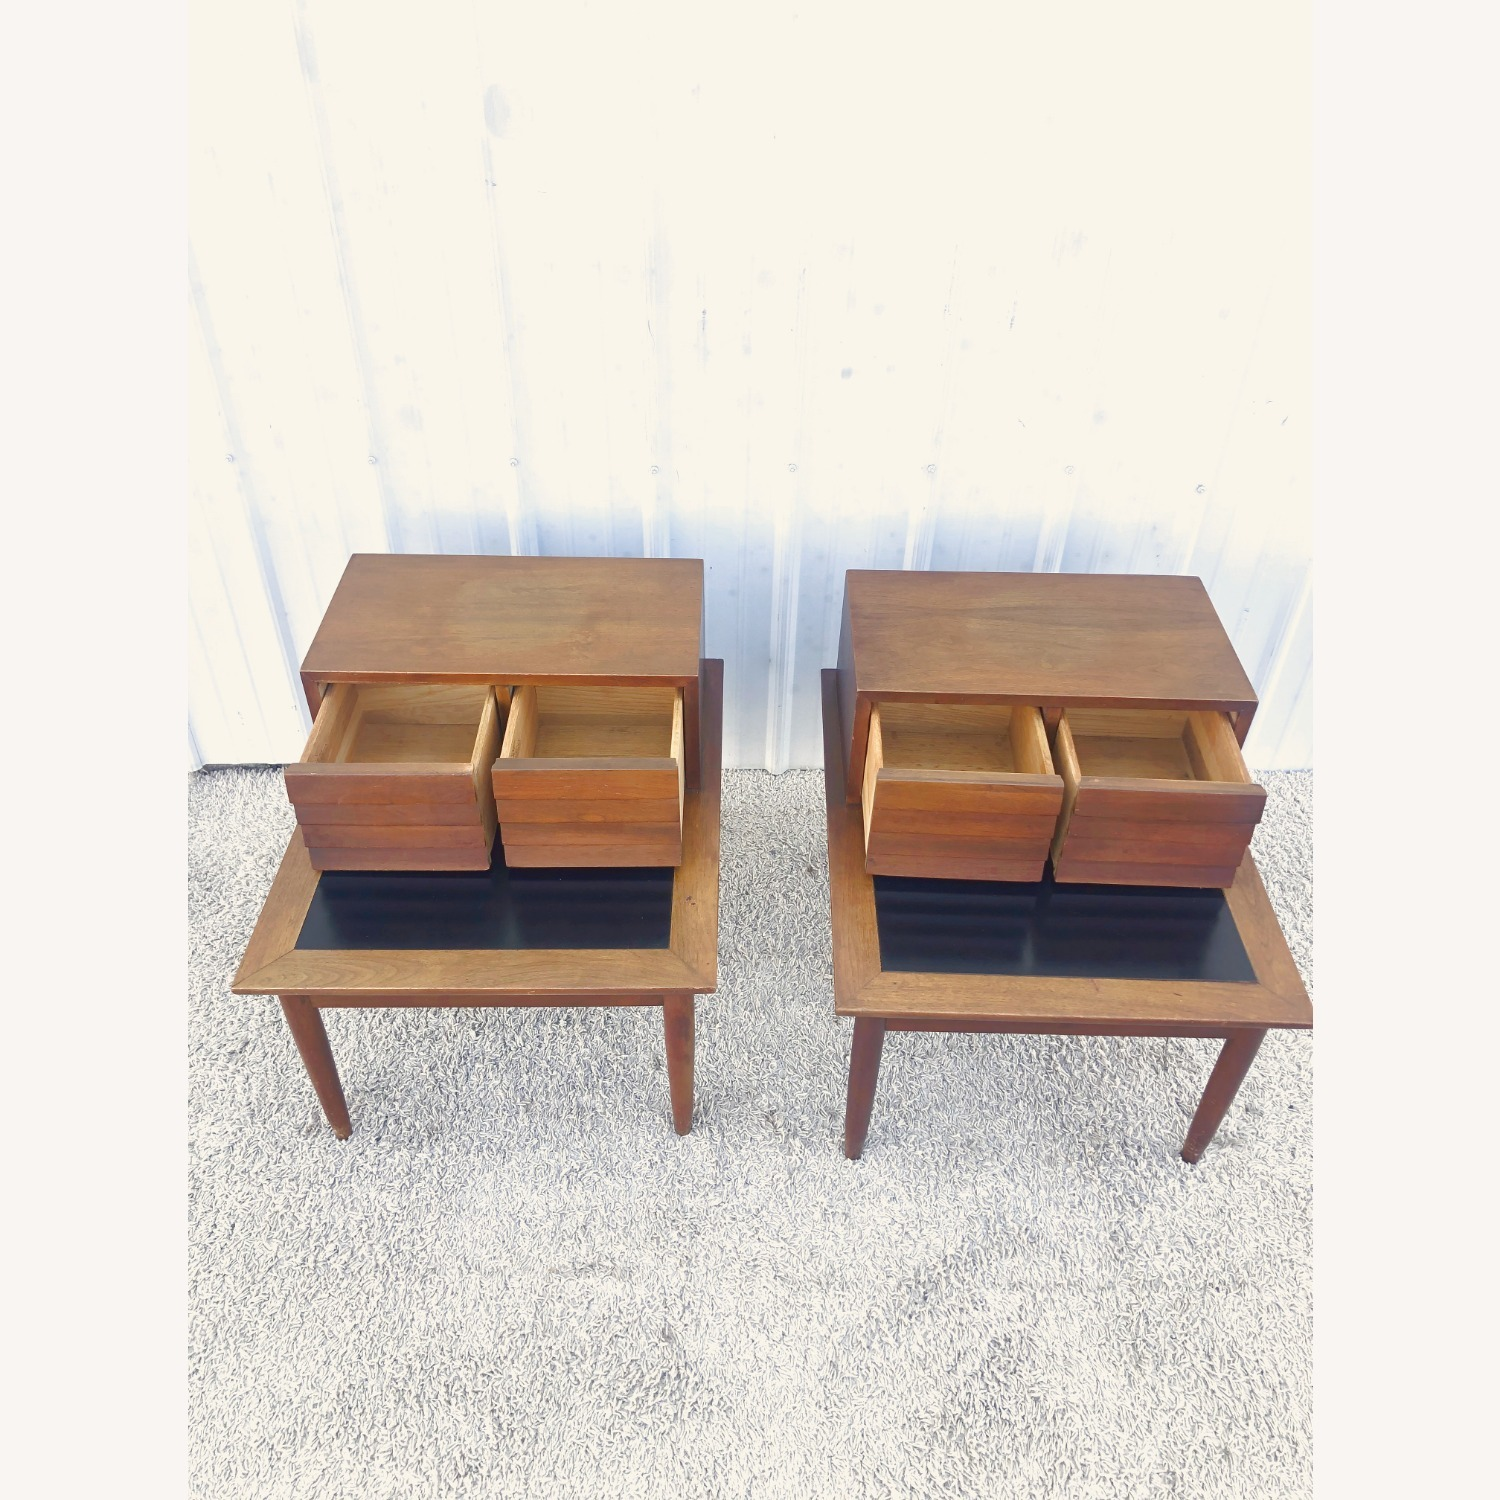 Pair Two Drawer MCM End Tables by Martinsvlle - image-11